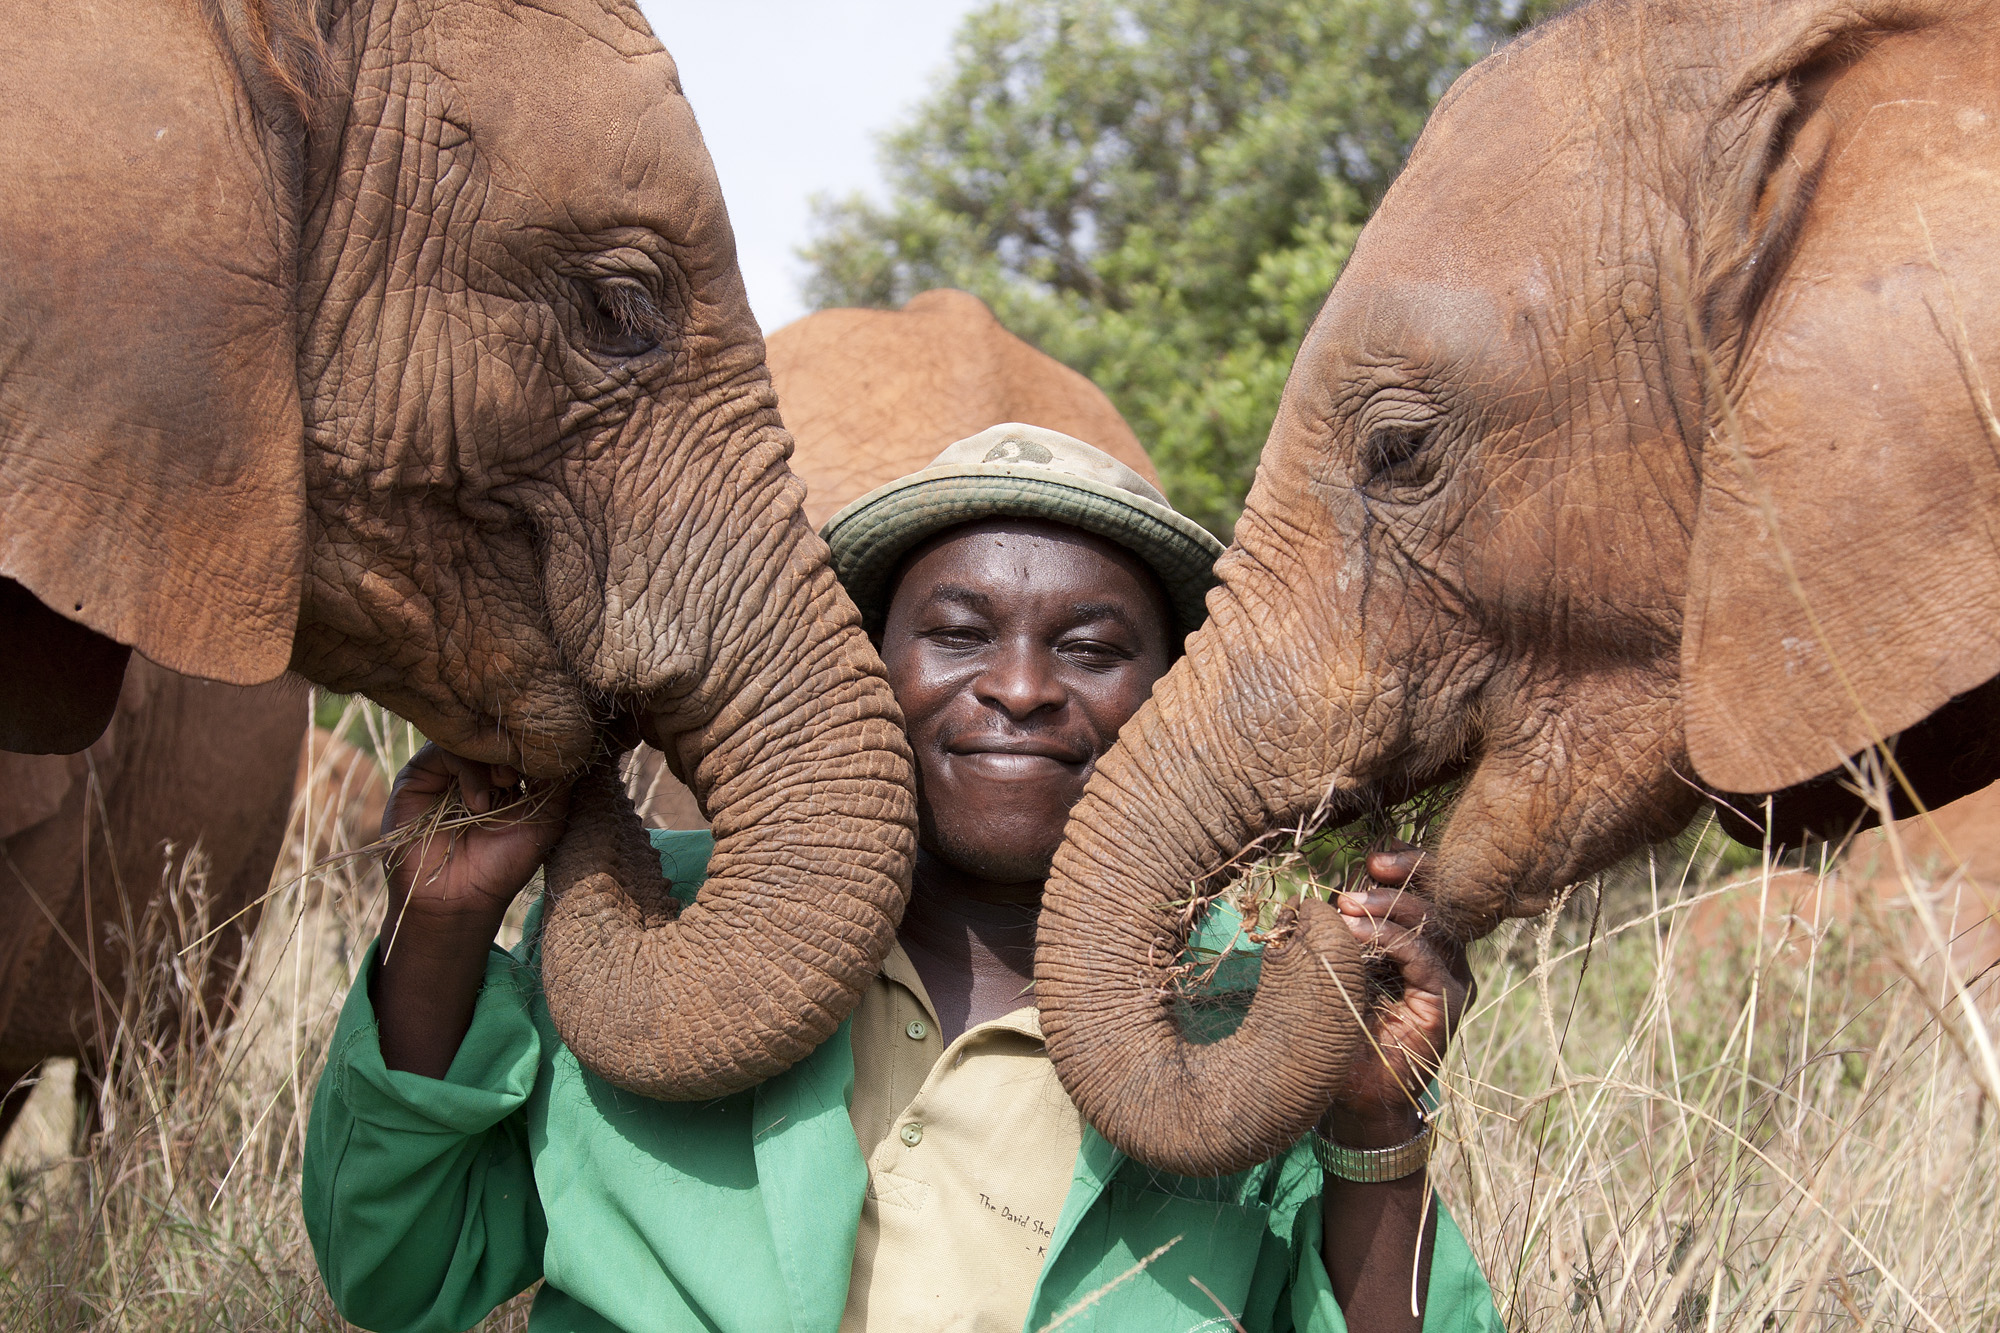 the march helps fund such charities as The David sheldrick wildlife trust to save elephant calves abandoned due to poaching.